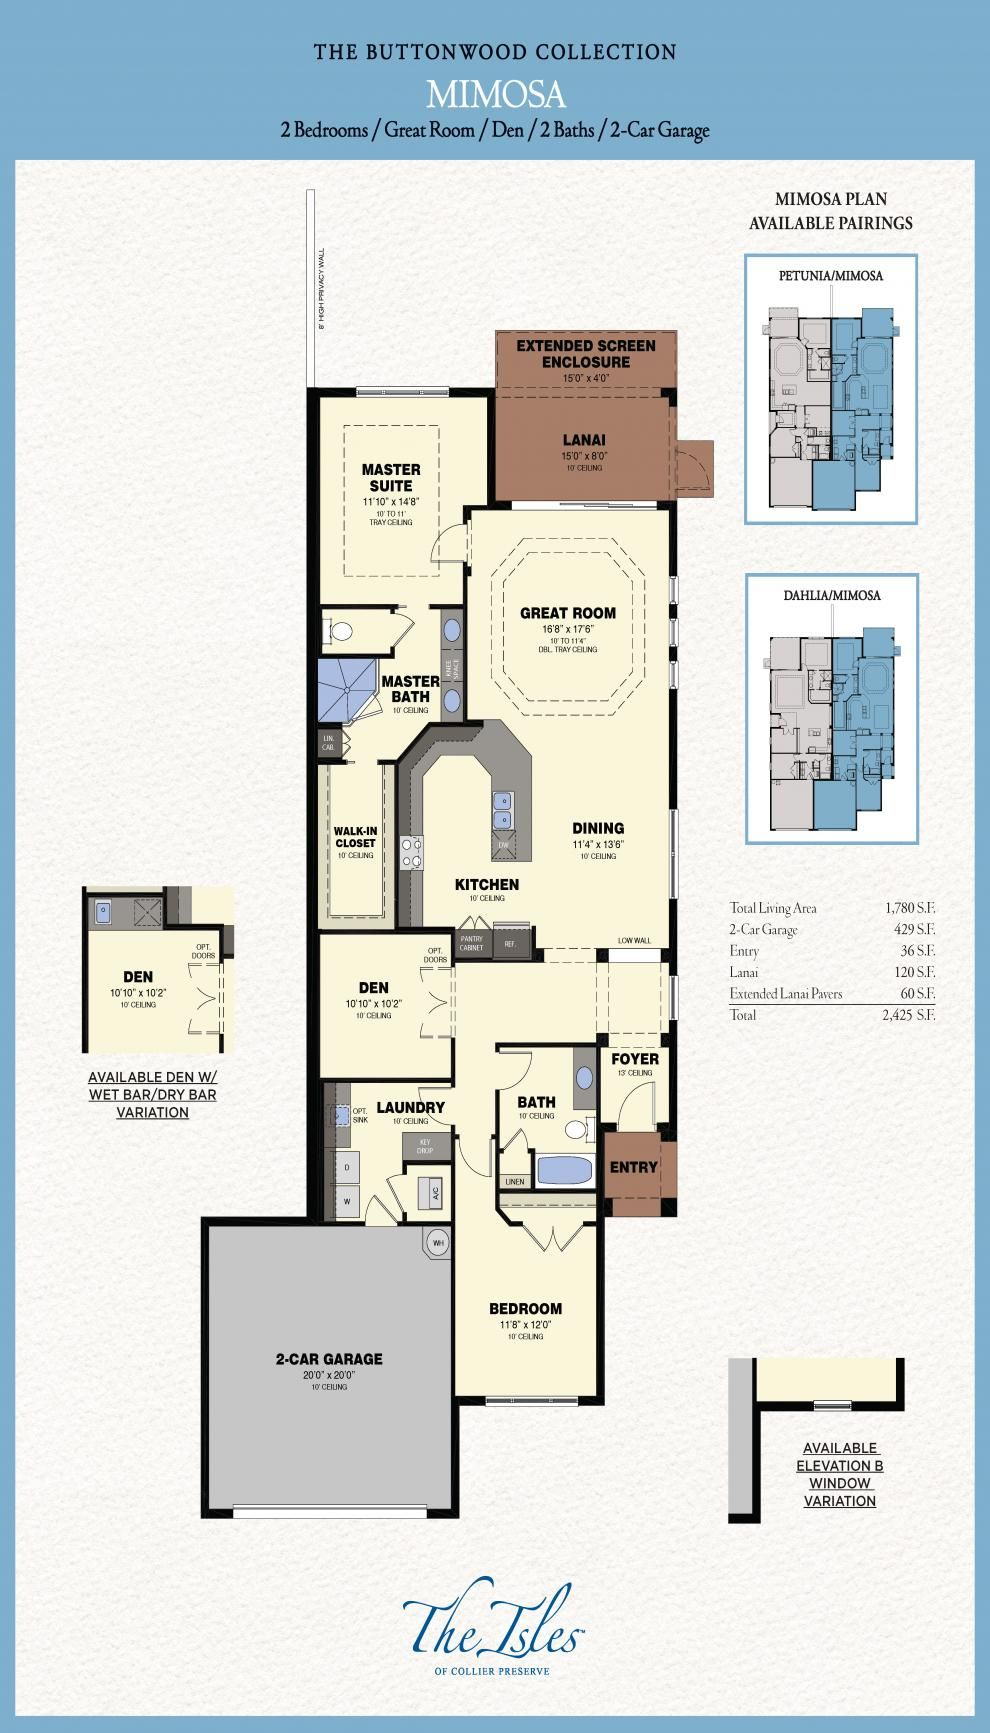 Minto Group Inc Buy A Home In Florida The Isles Of